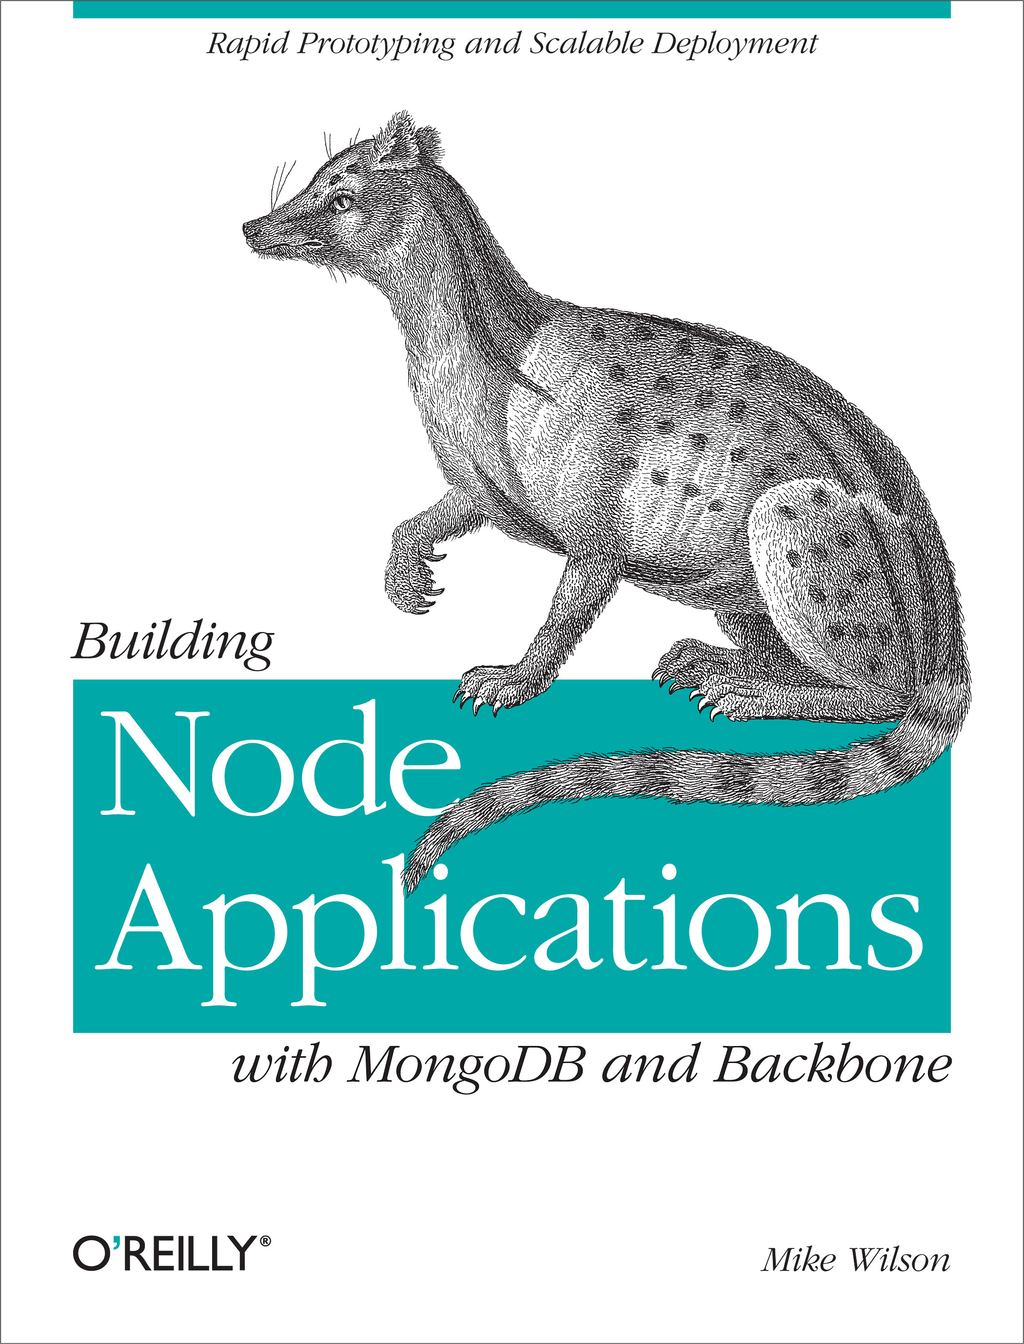 Building Node Applications with MongoDB and Backbone